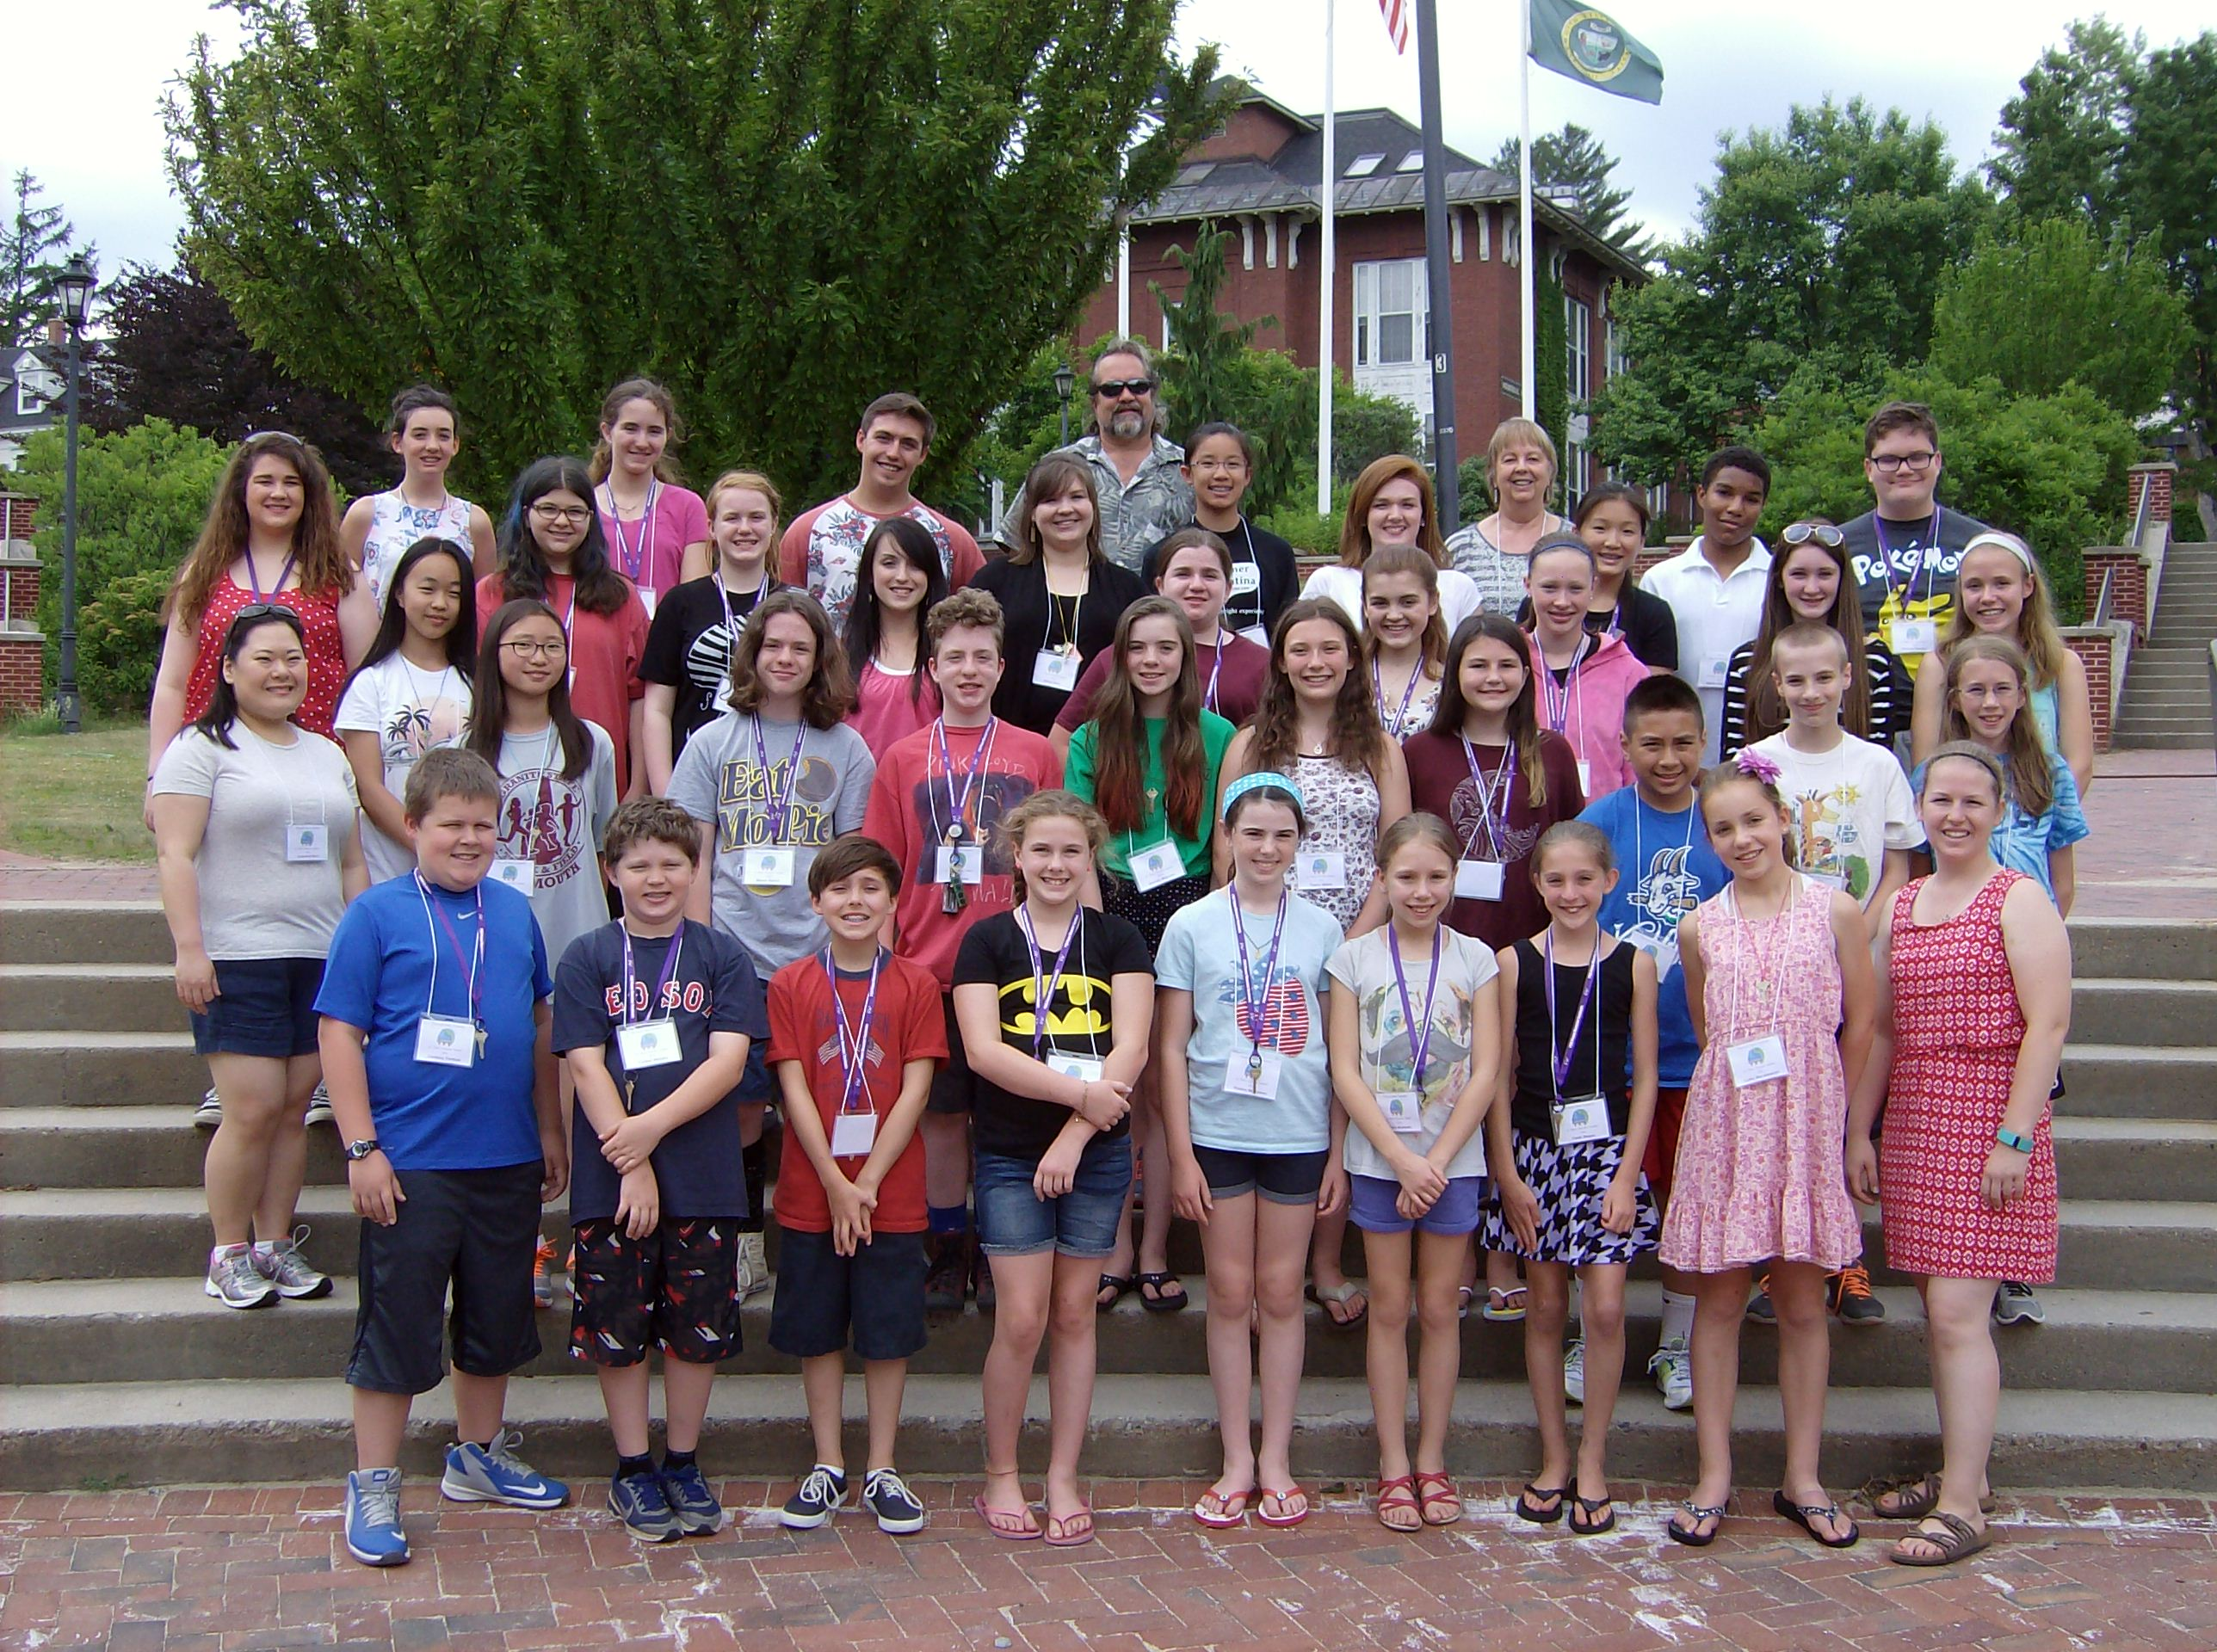 JR Piano camp group photo 2016